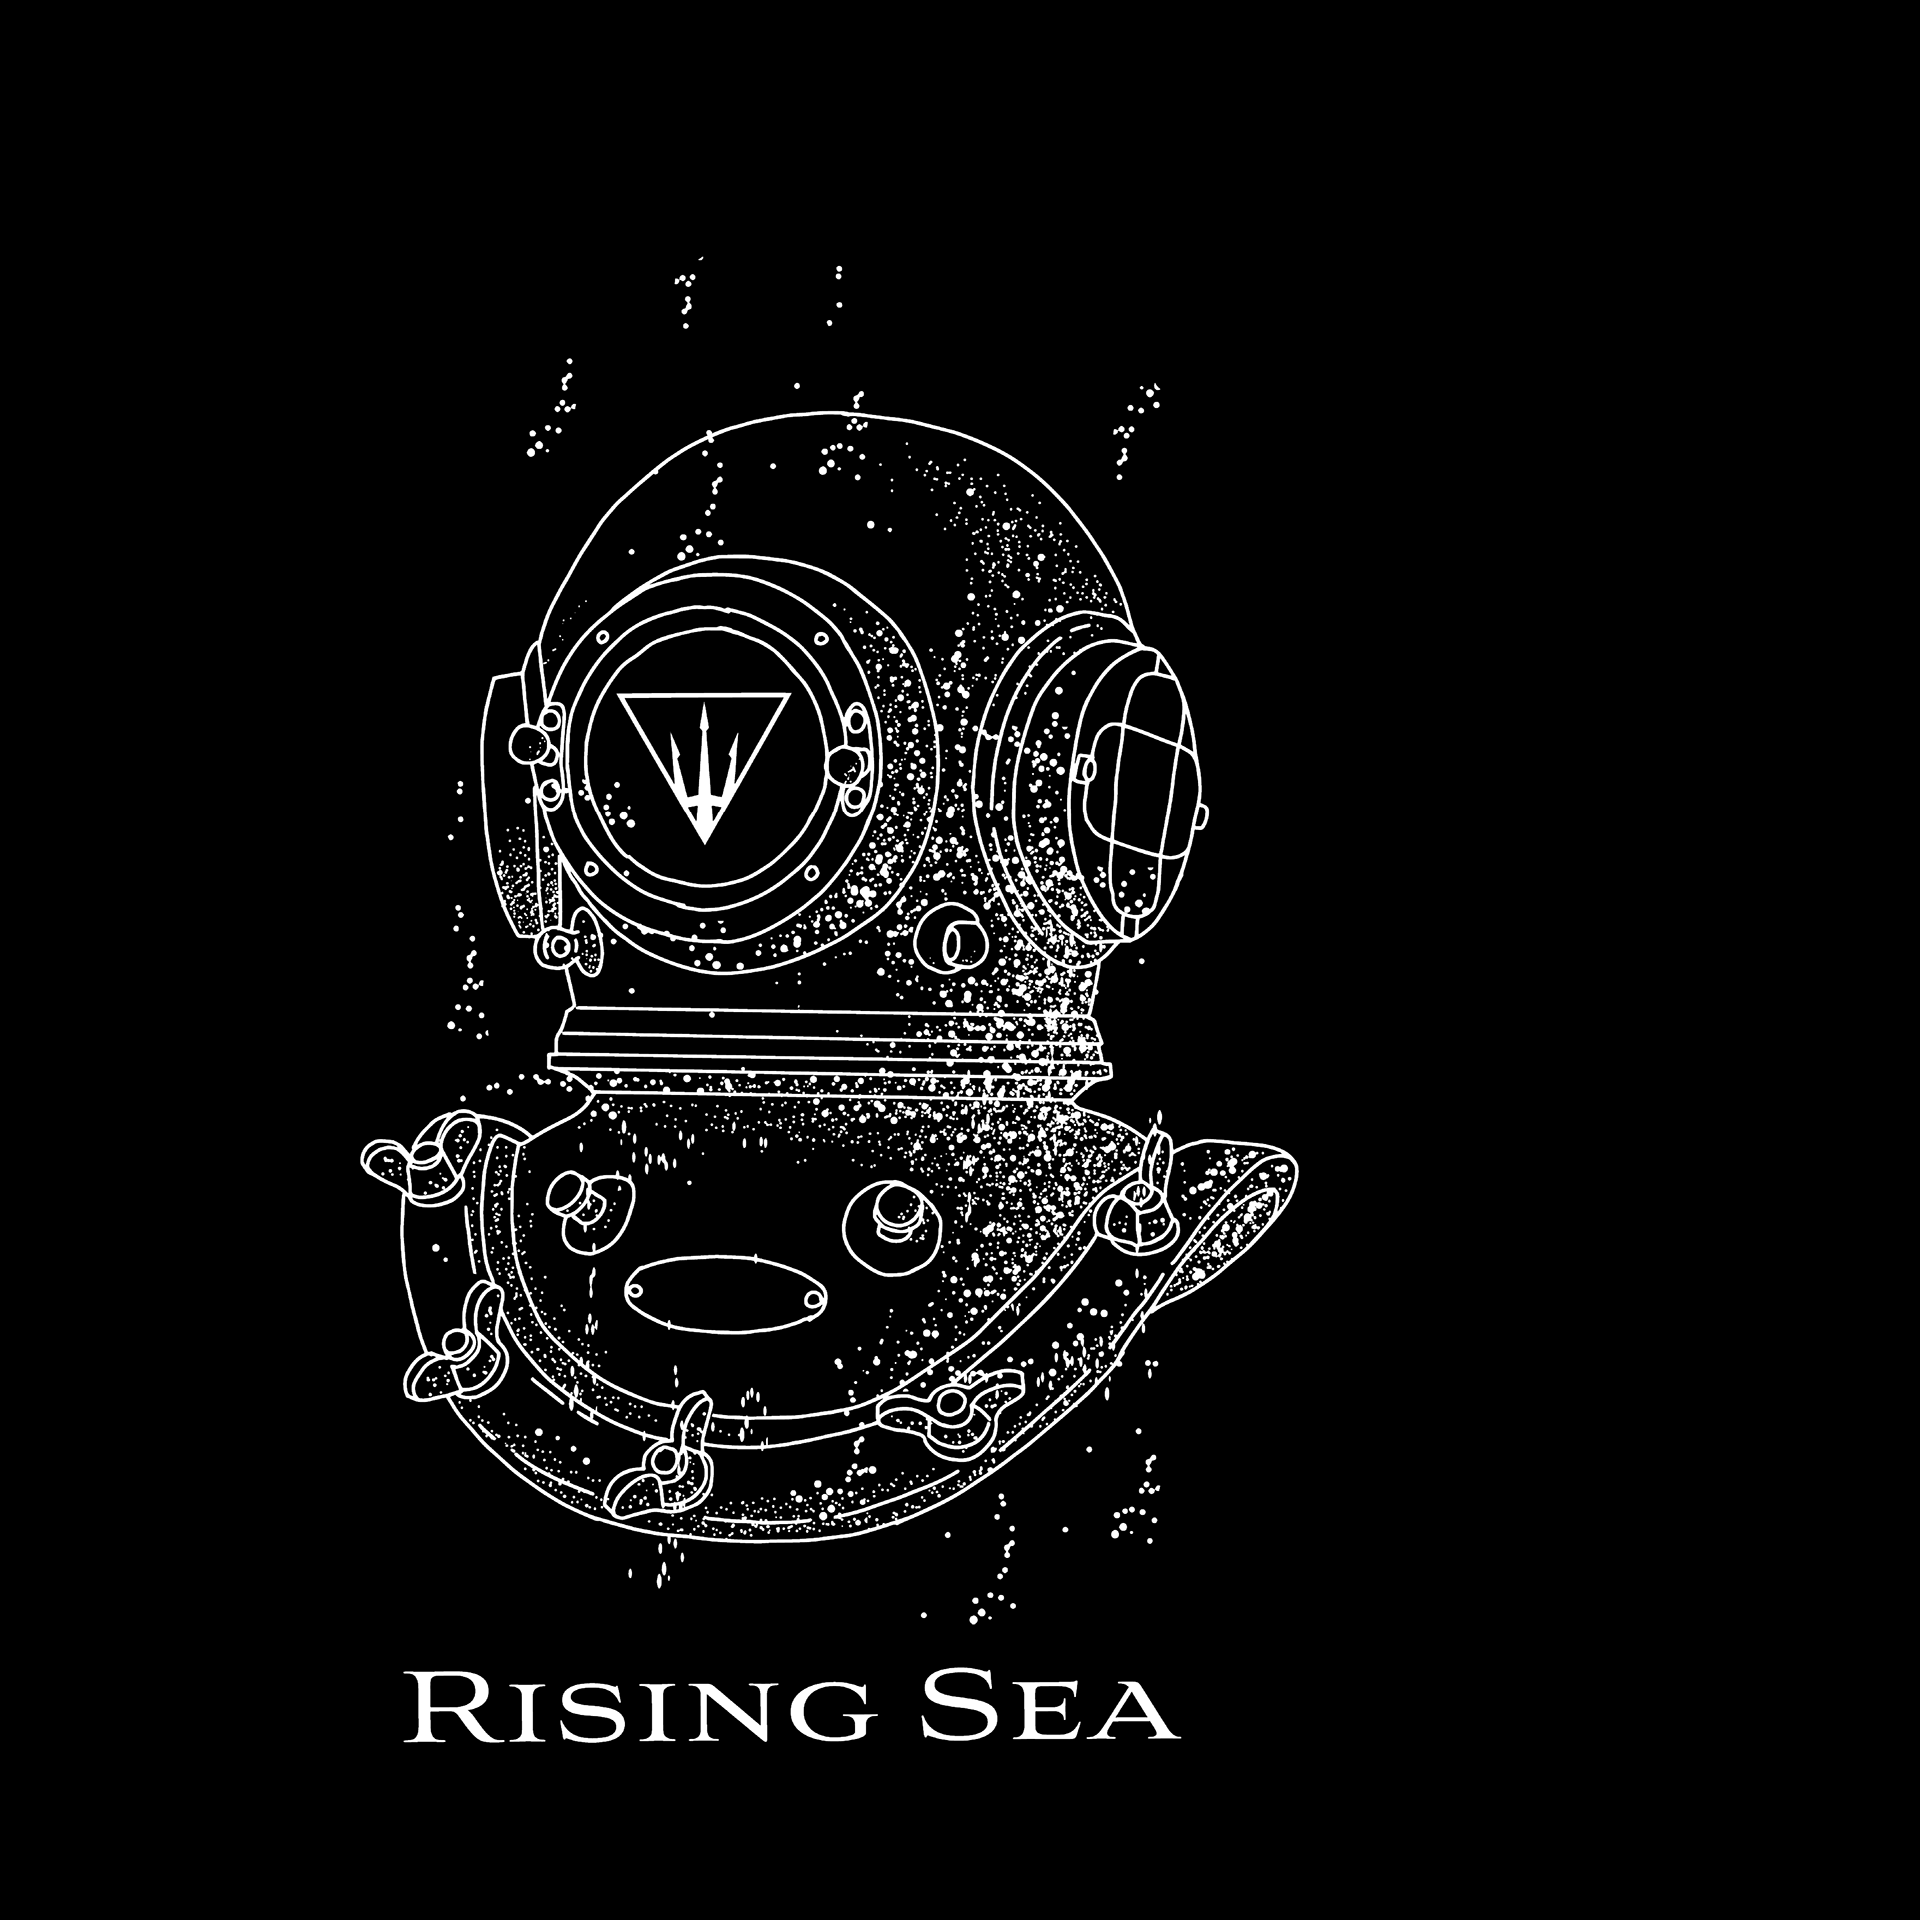 Shirt design toronto - Here Is A T Shirt Design I Designed For A Toronto Based Clothing Company Called Rising Sea Their Style Is Similar To Skateboards Brands Such As Volcom And